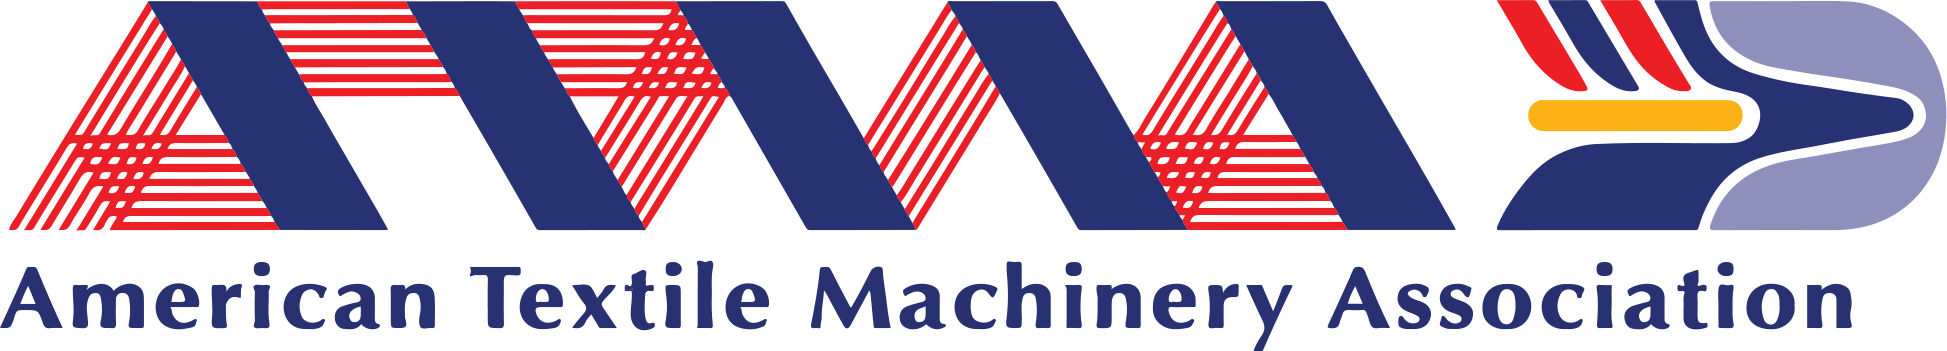 American Textile Machinery Association